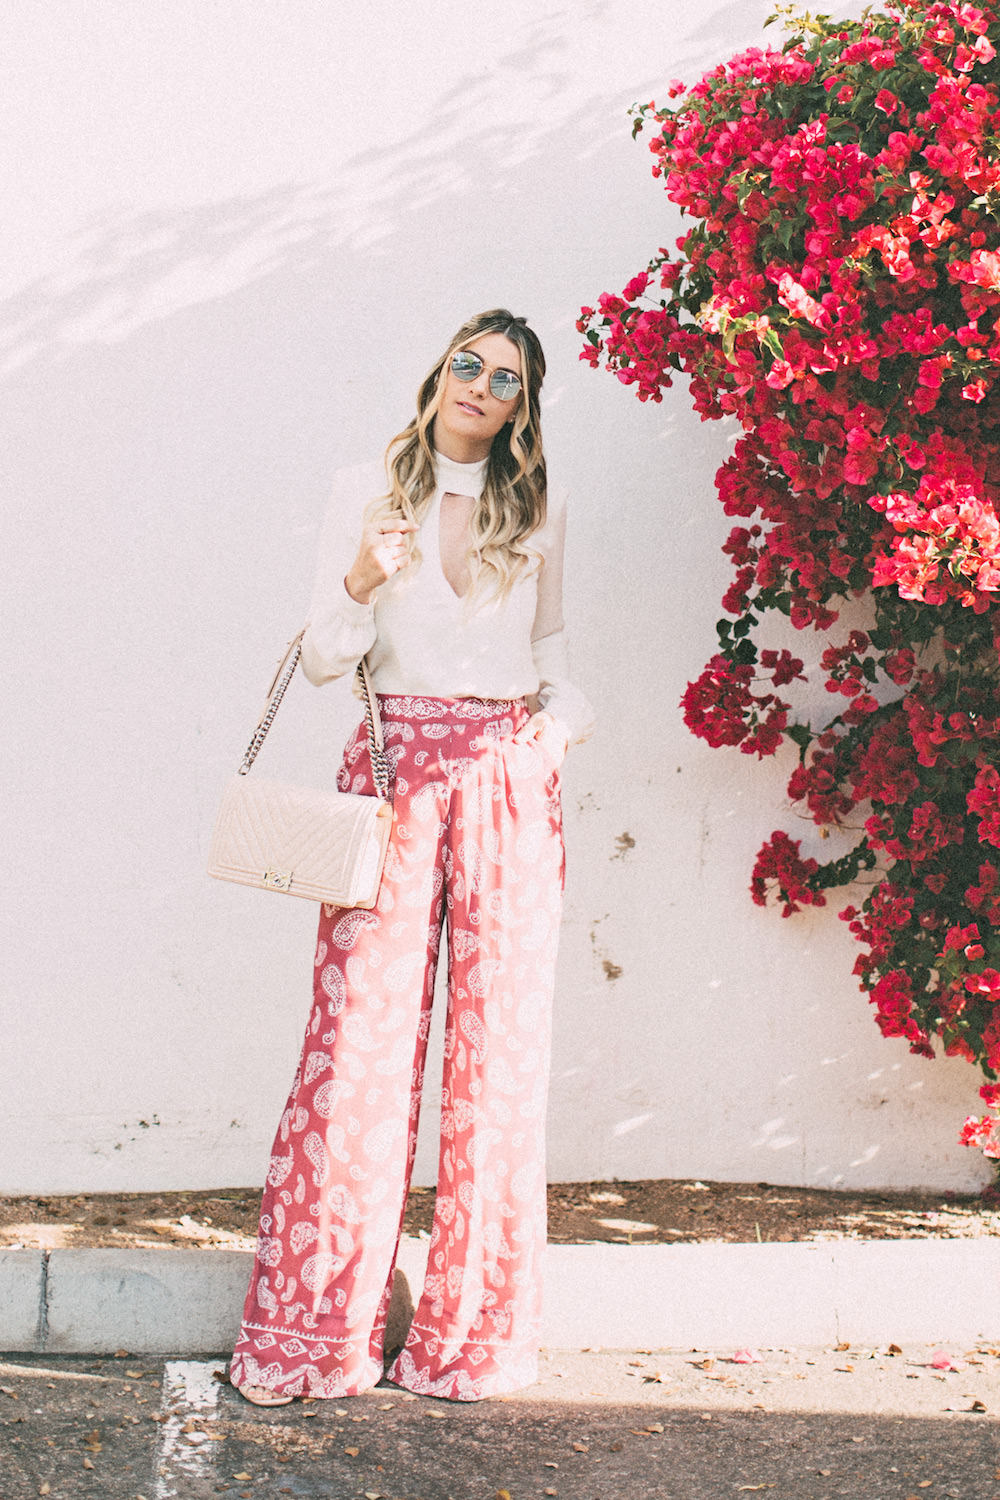 Caitlin Lindquist of the Arizona fashion blog Dash of Darling shares how to style pink high waisted paisley pants for spring